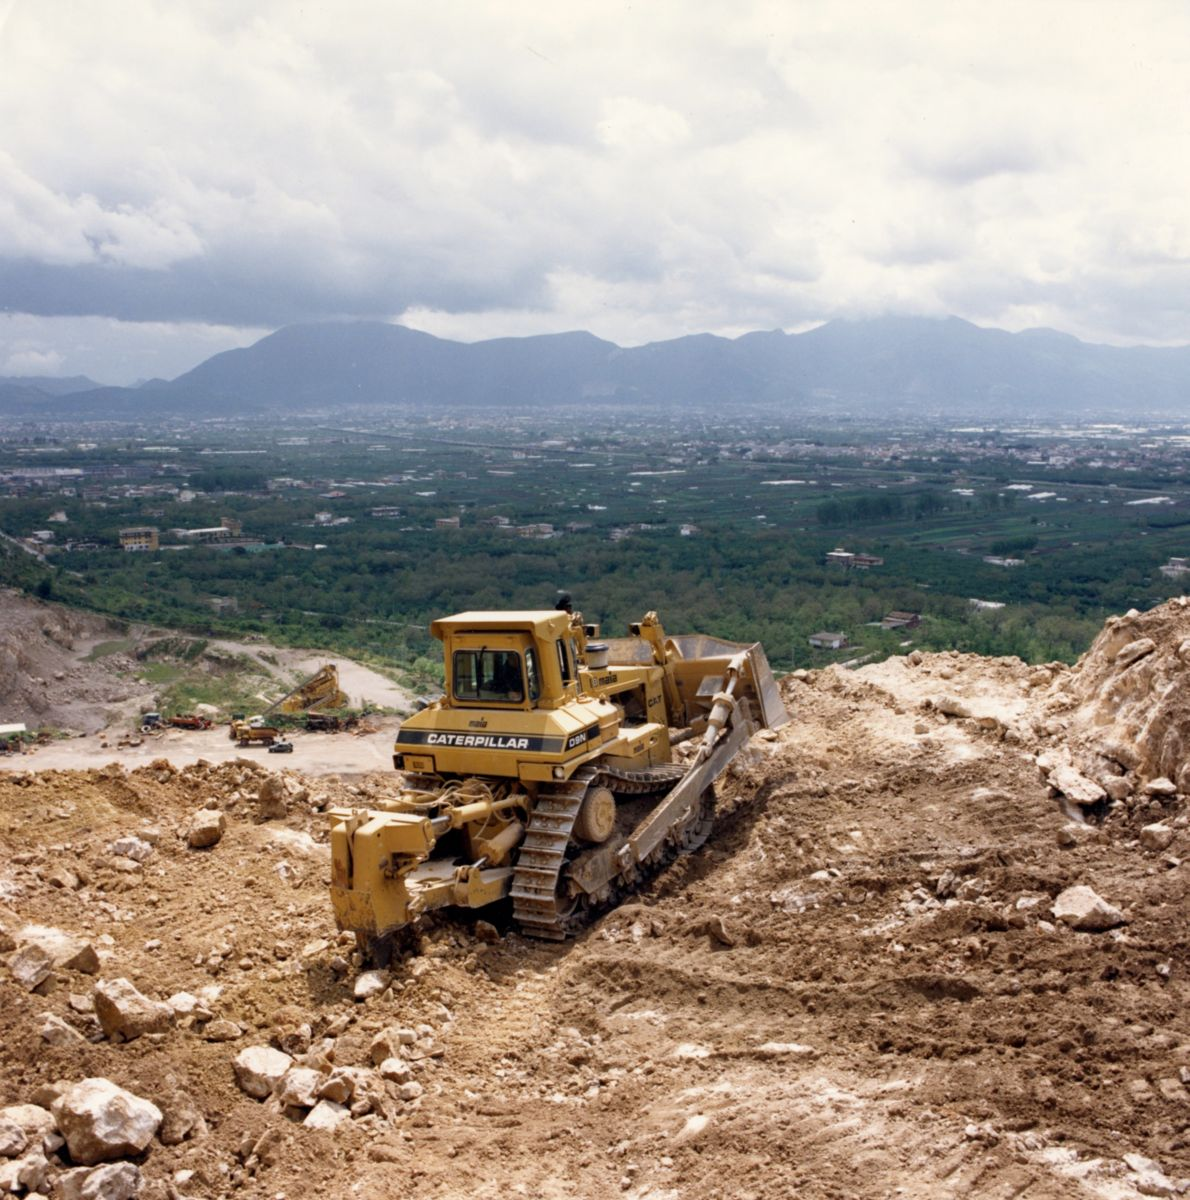 Cat® D9N dozer at work in Italy.